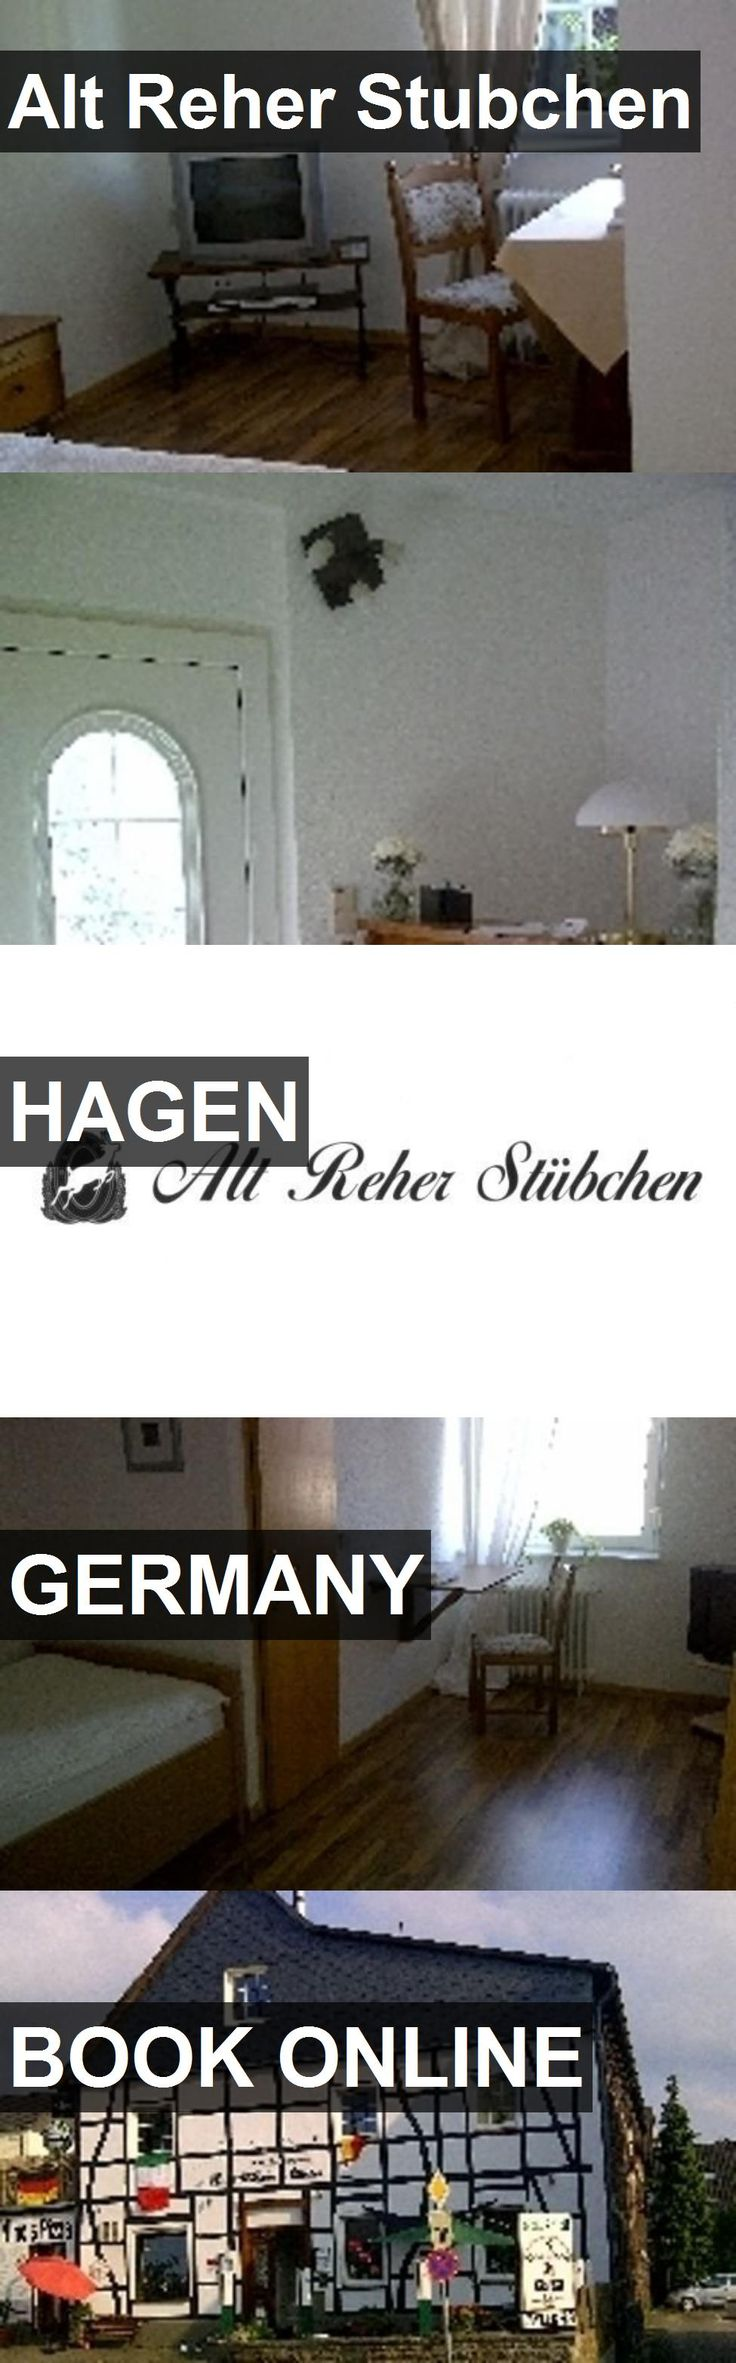 Hotel Alt Reher Stubchen in Hagen, Germany. For more information, photos, reviews and best prices please follow the link. #Germany #Hagen #AltReherStubchen #hotel #travel #vacation